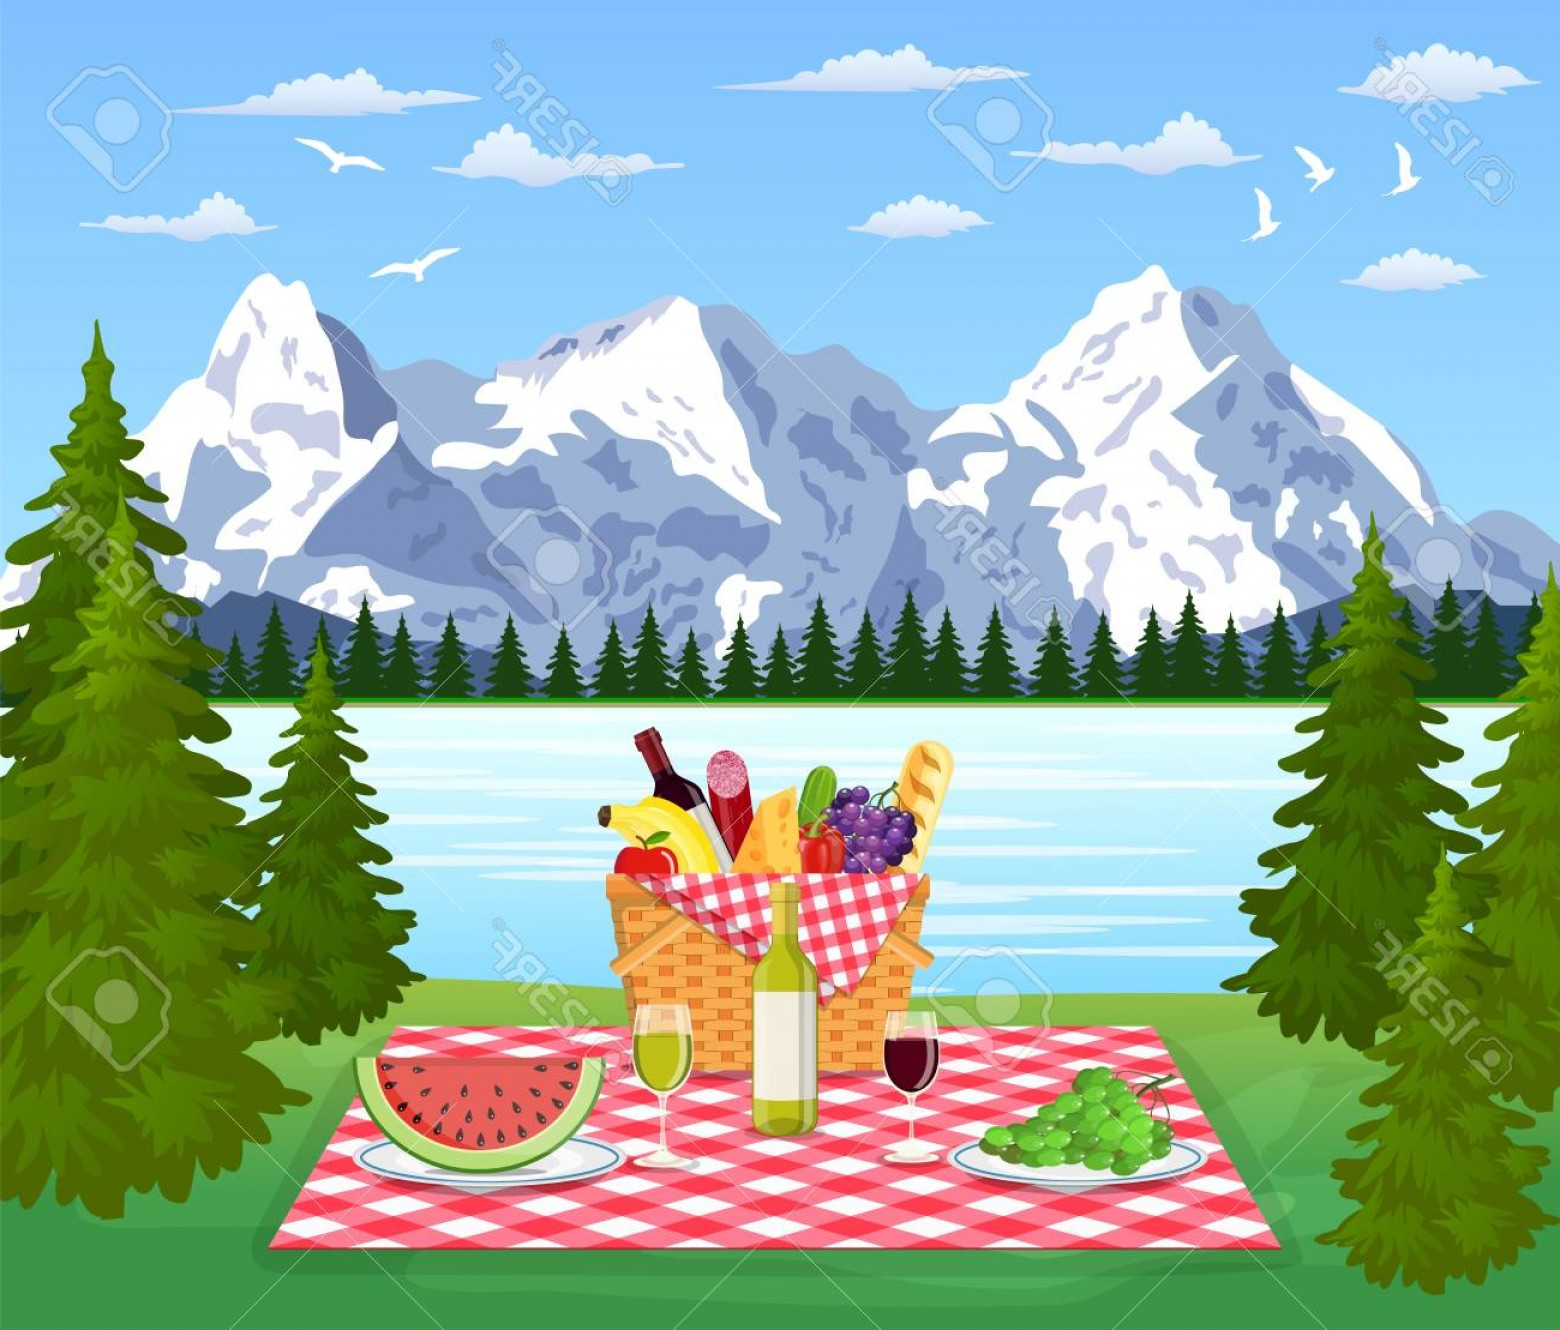 Picnic Vector Scenery: Photostock Vector Picnic In The Mountains Wicker Picnic Basket Full Of Products Vector Illustration In Flat Style